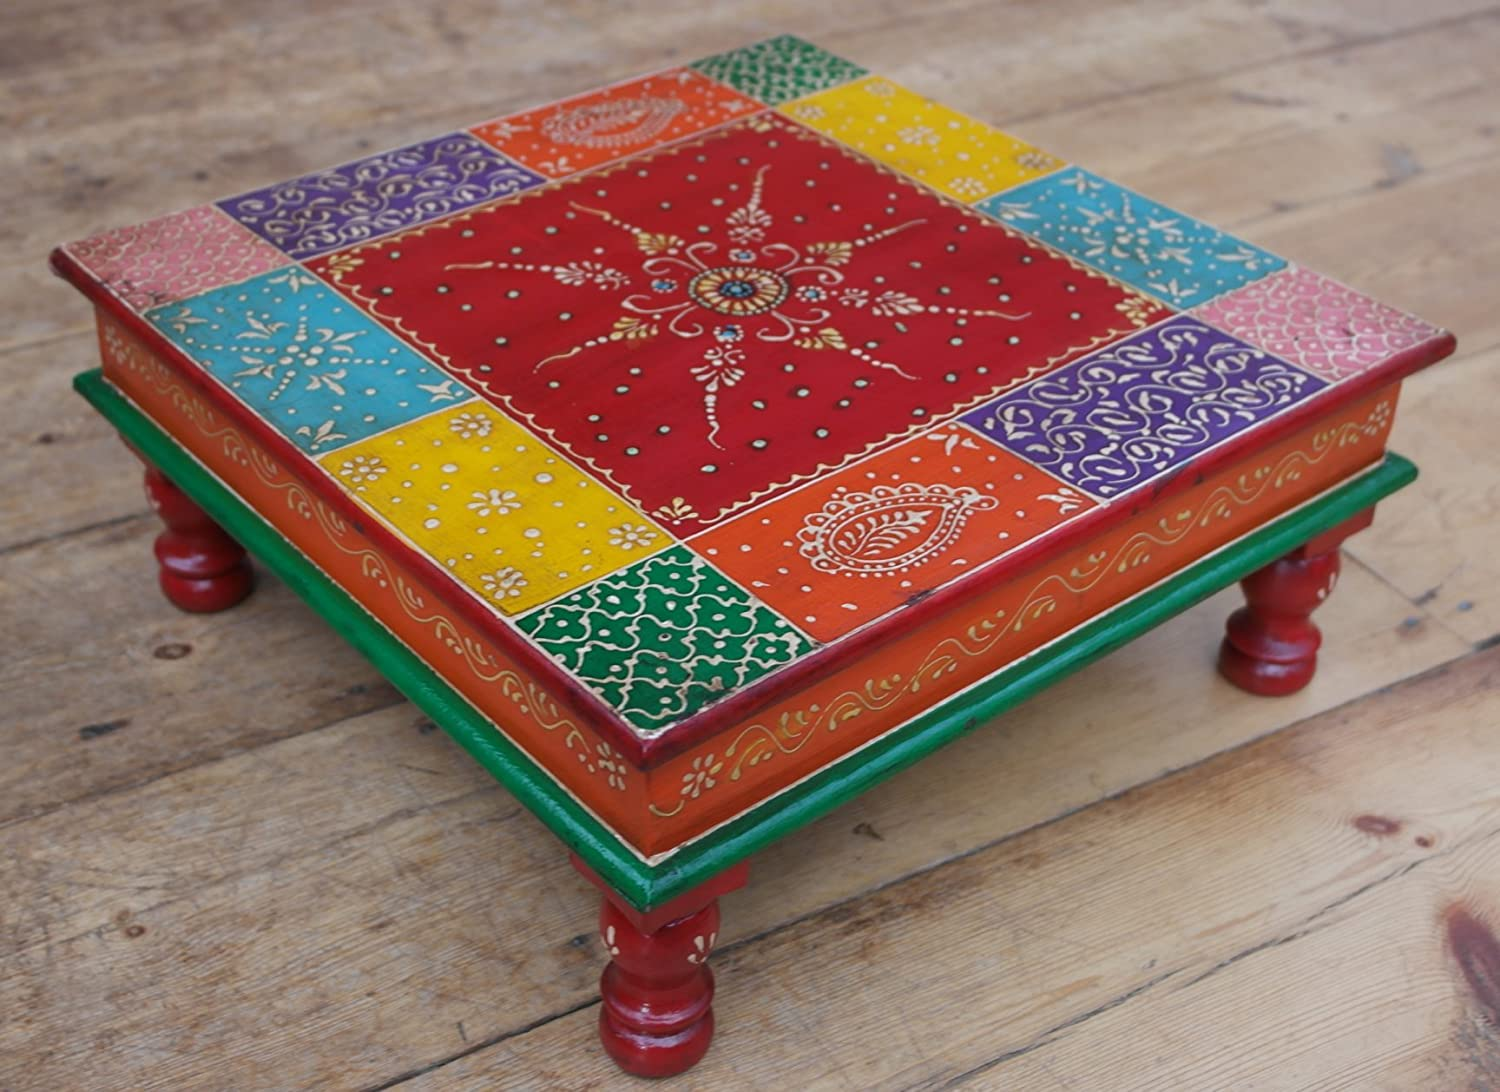 Classic Indian painted wooden Bajot table Vectis